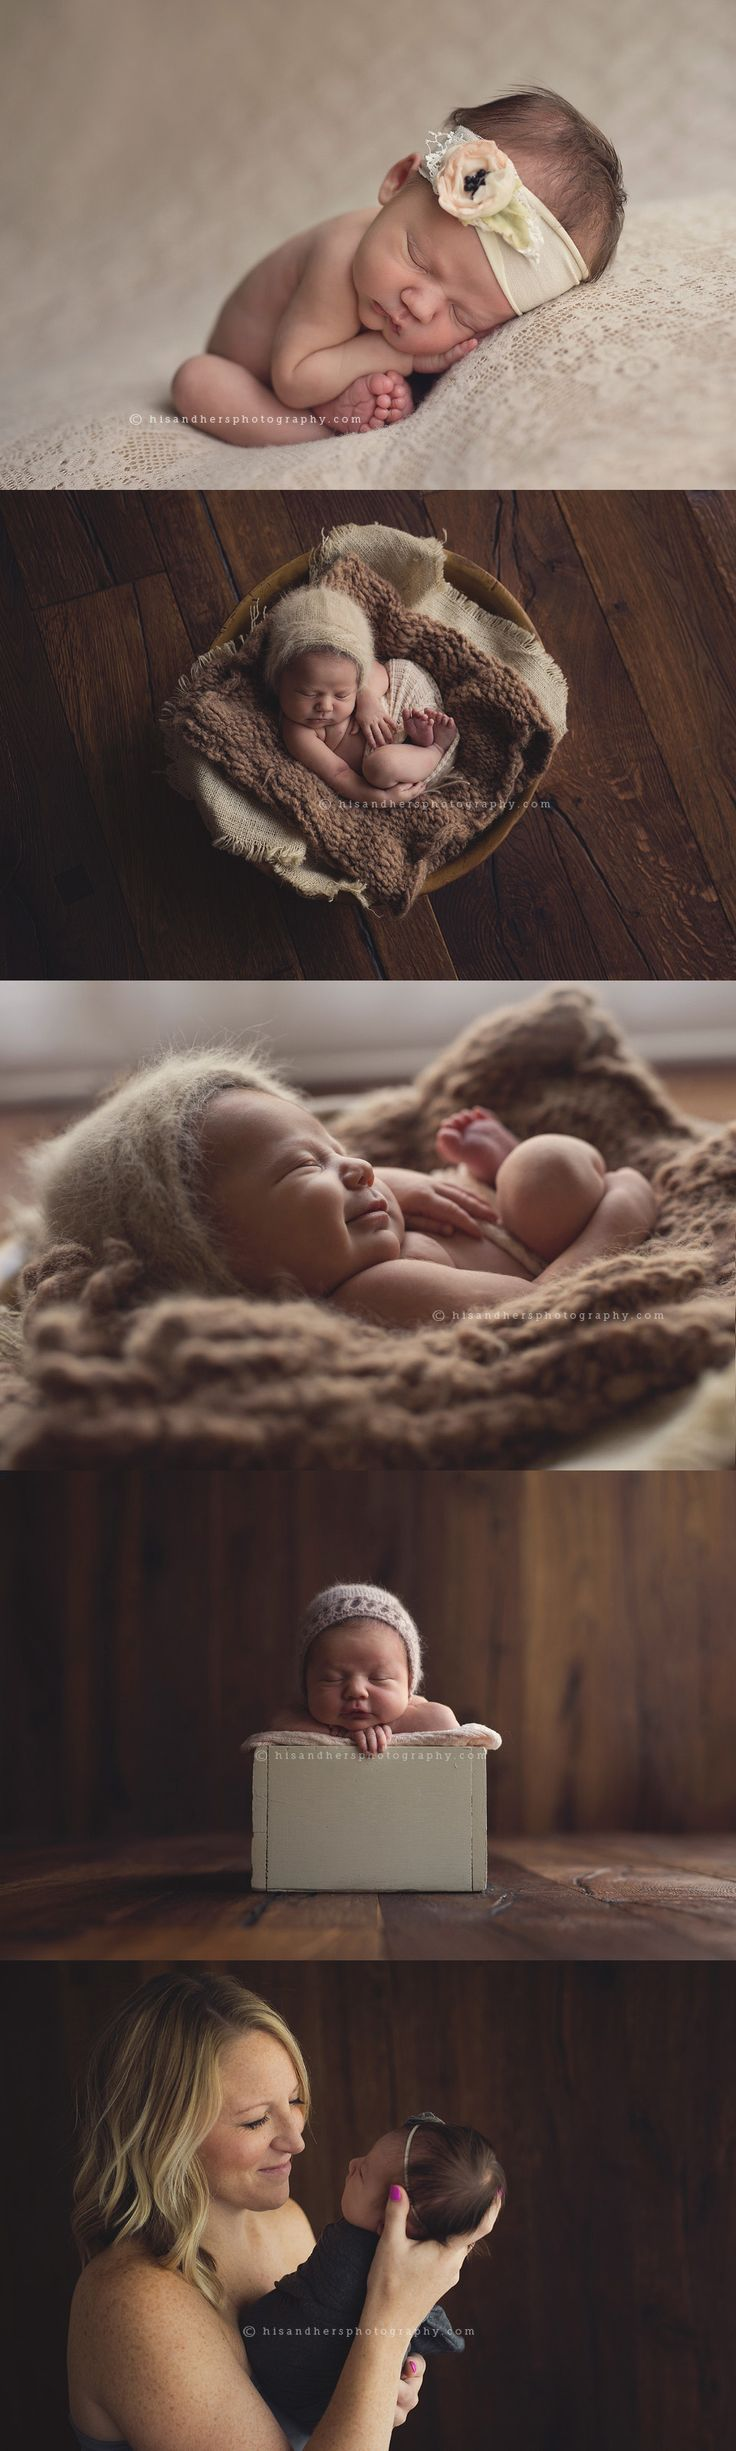 5-day-old Ruby Kate | Des Moines, Iowa newborn photographer, Darcy Milder | His & Hers